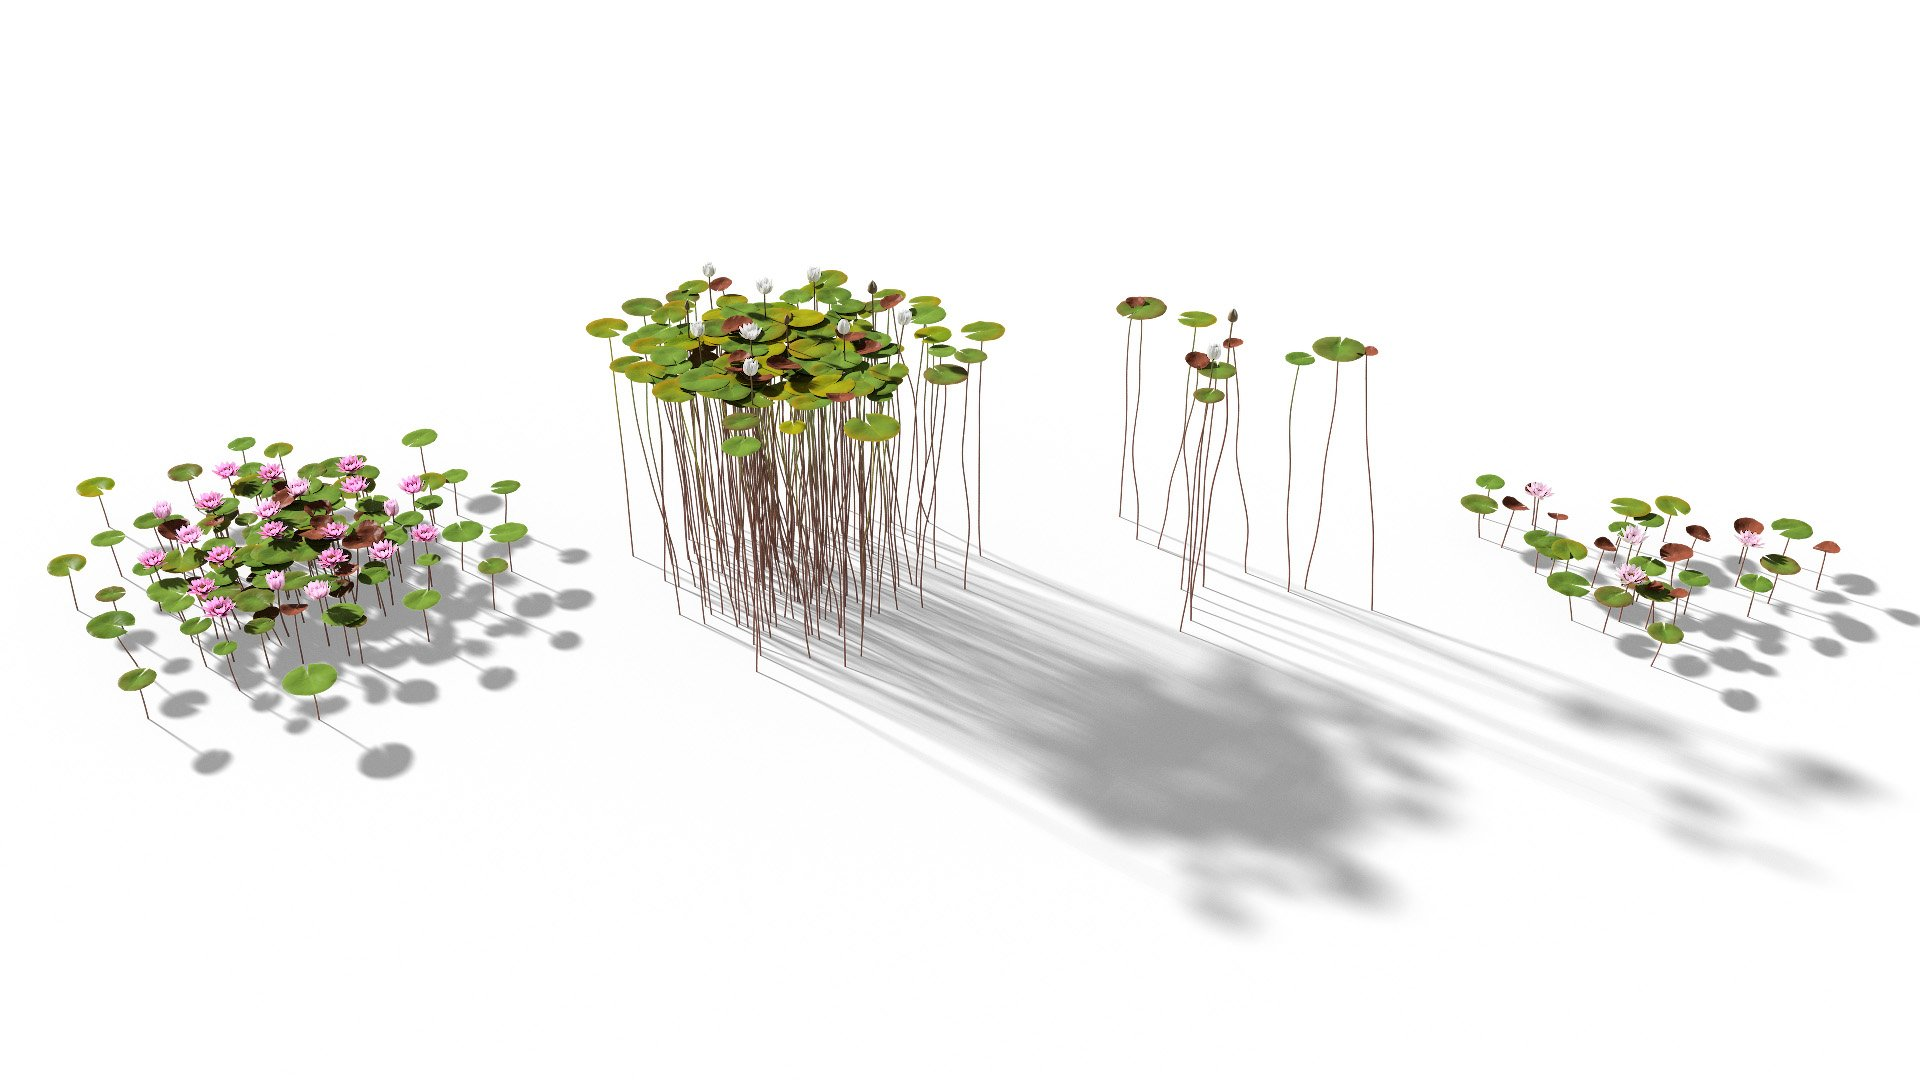 3D model of the White water lily Nymphaea alba published parameters